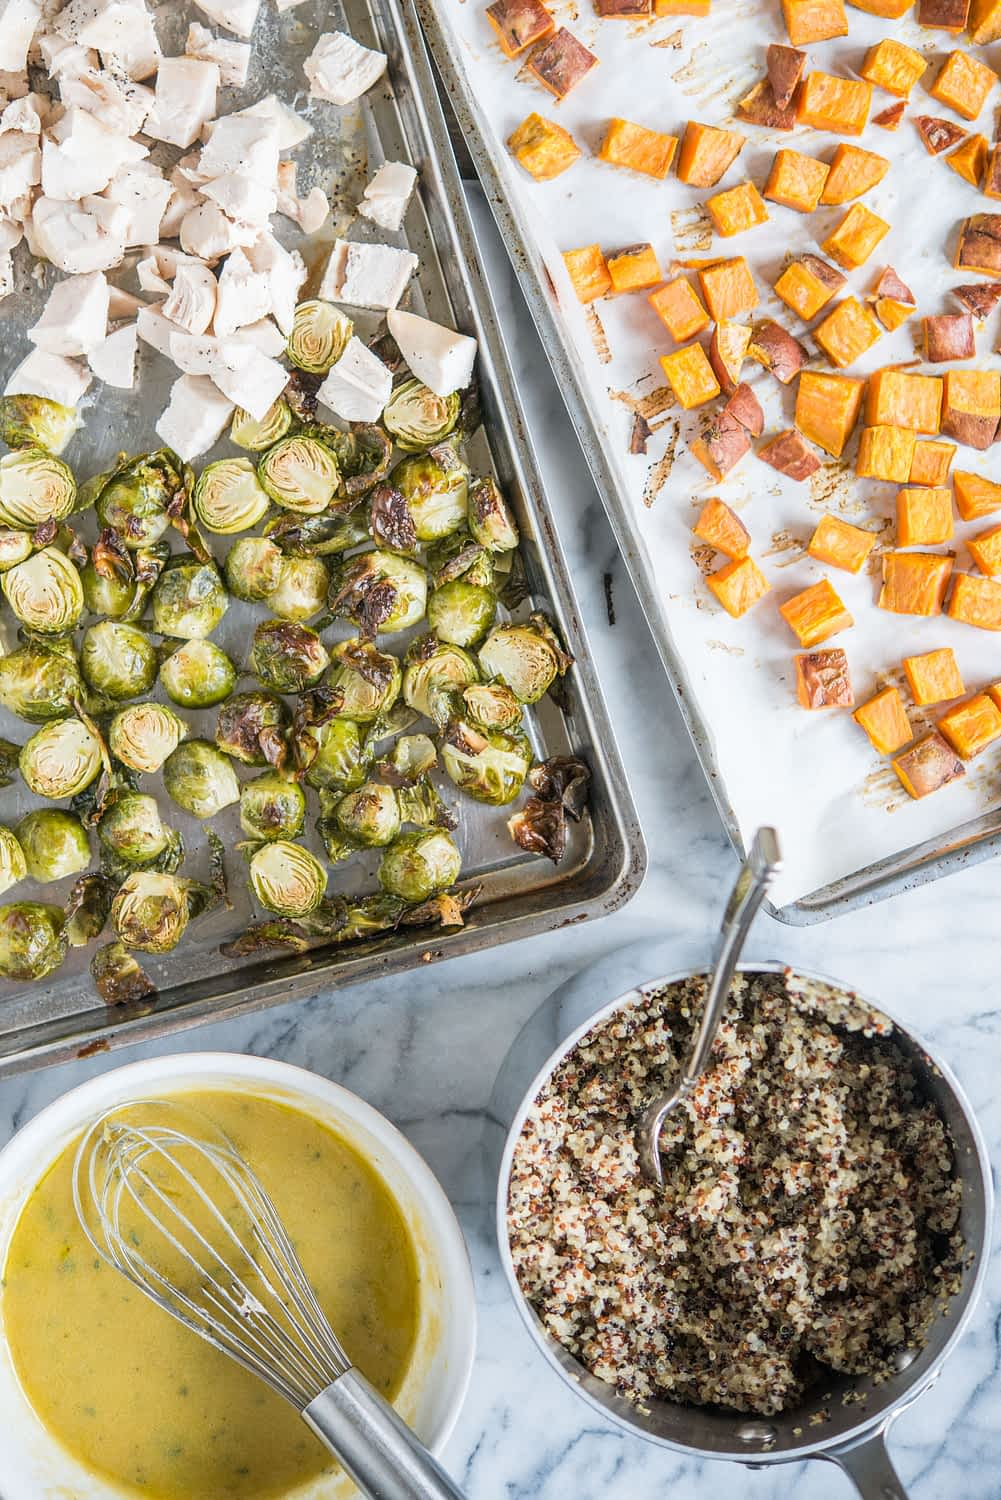 cubed chicken breast, roasted brussels sprouts, and roasted sweet potatoes on two sheet pans next to a pot of quinoa and a bowl full of dijon dressing